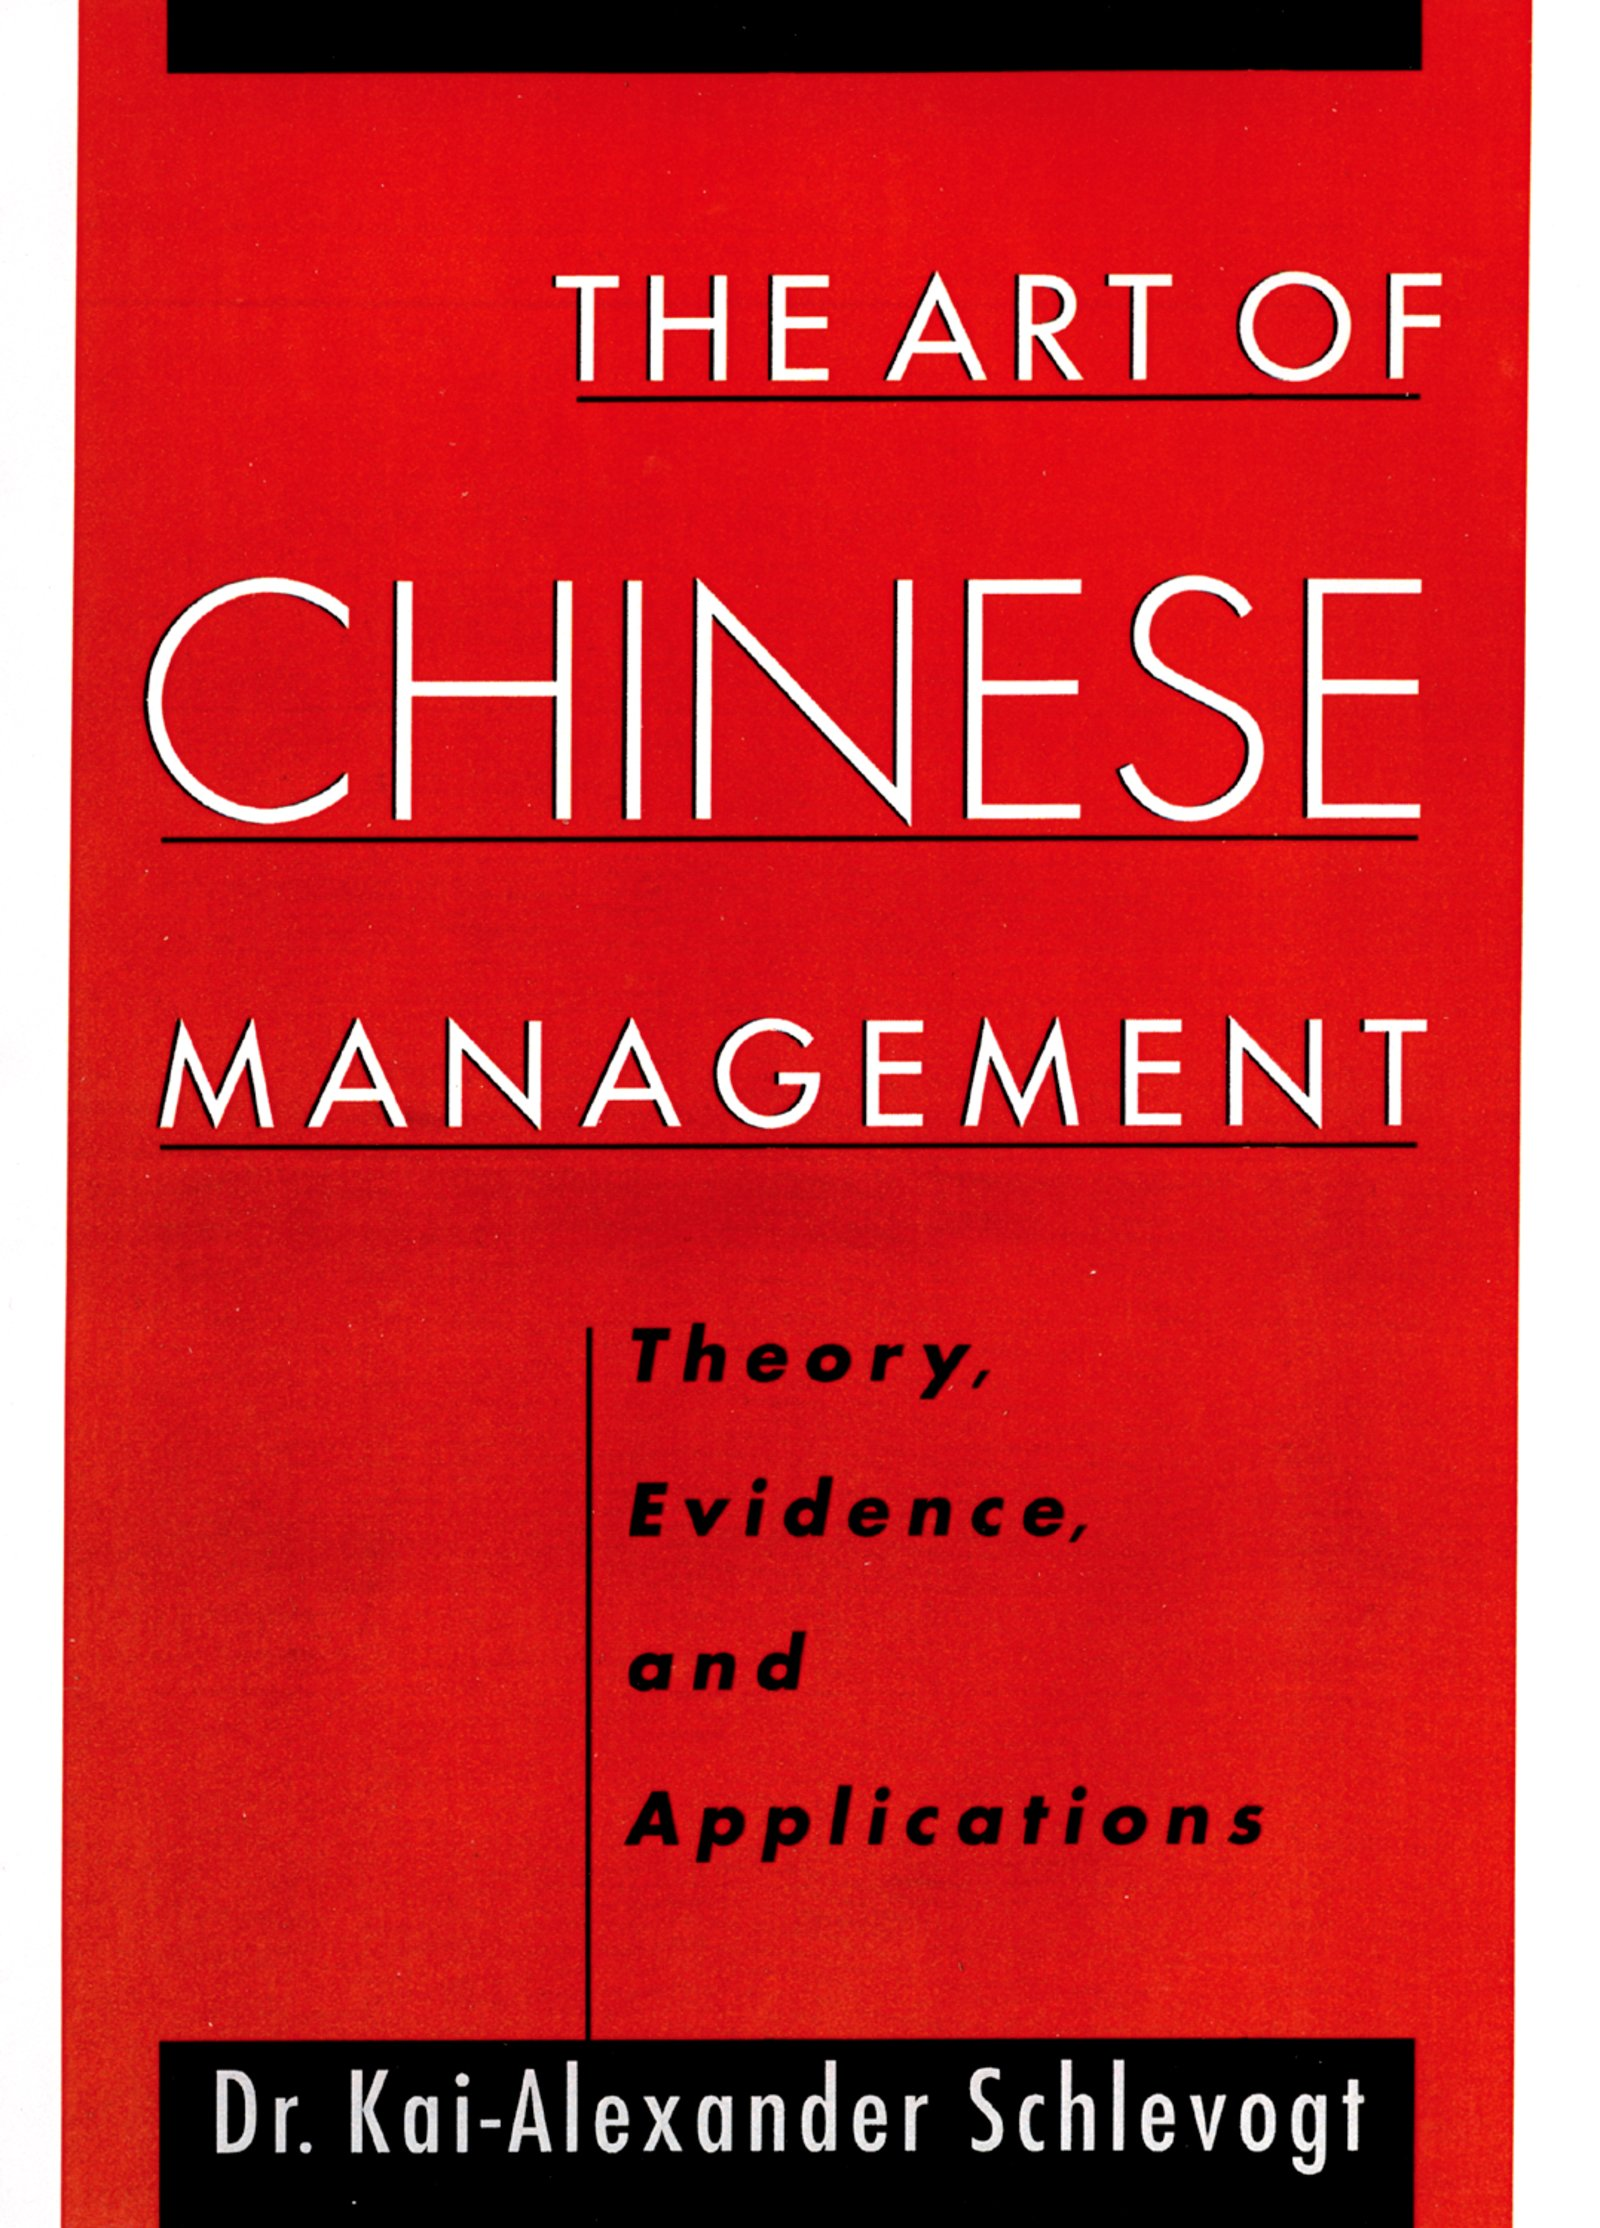 Download Ebook The Art of Chinese Management by Kai-Alexander Schlevogt Pdf